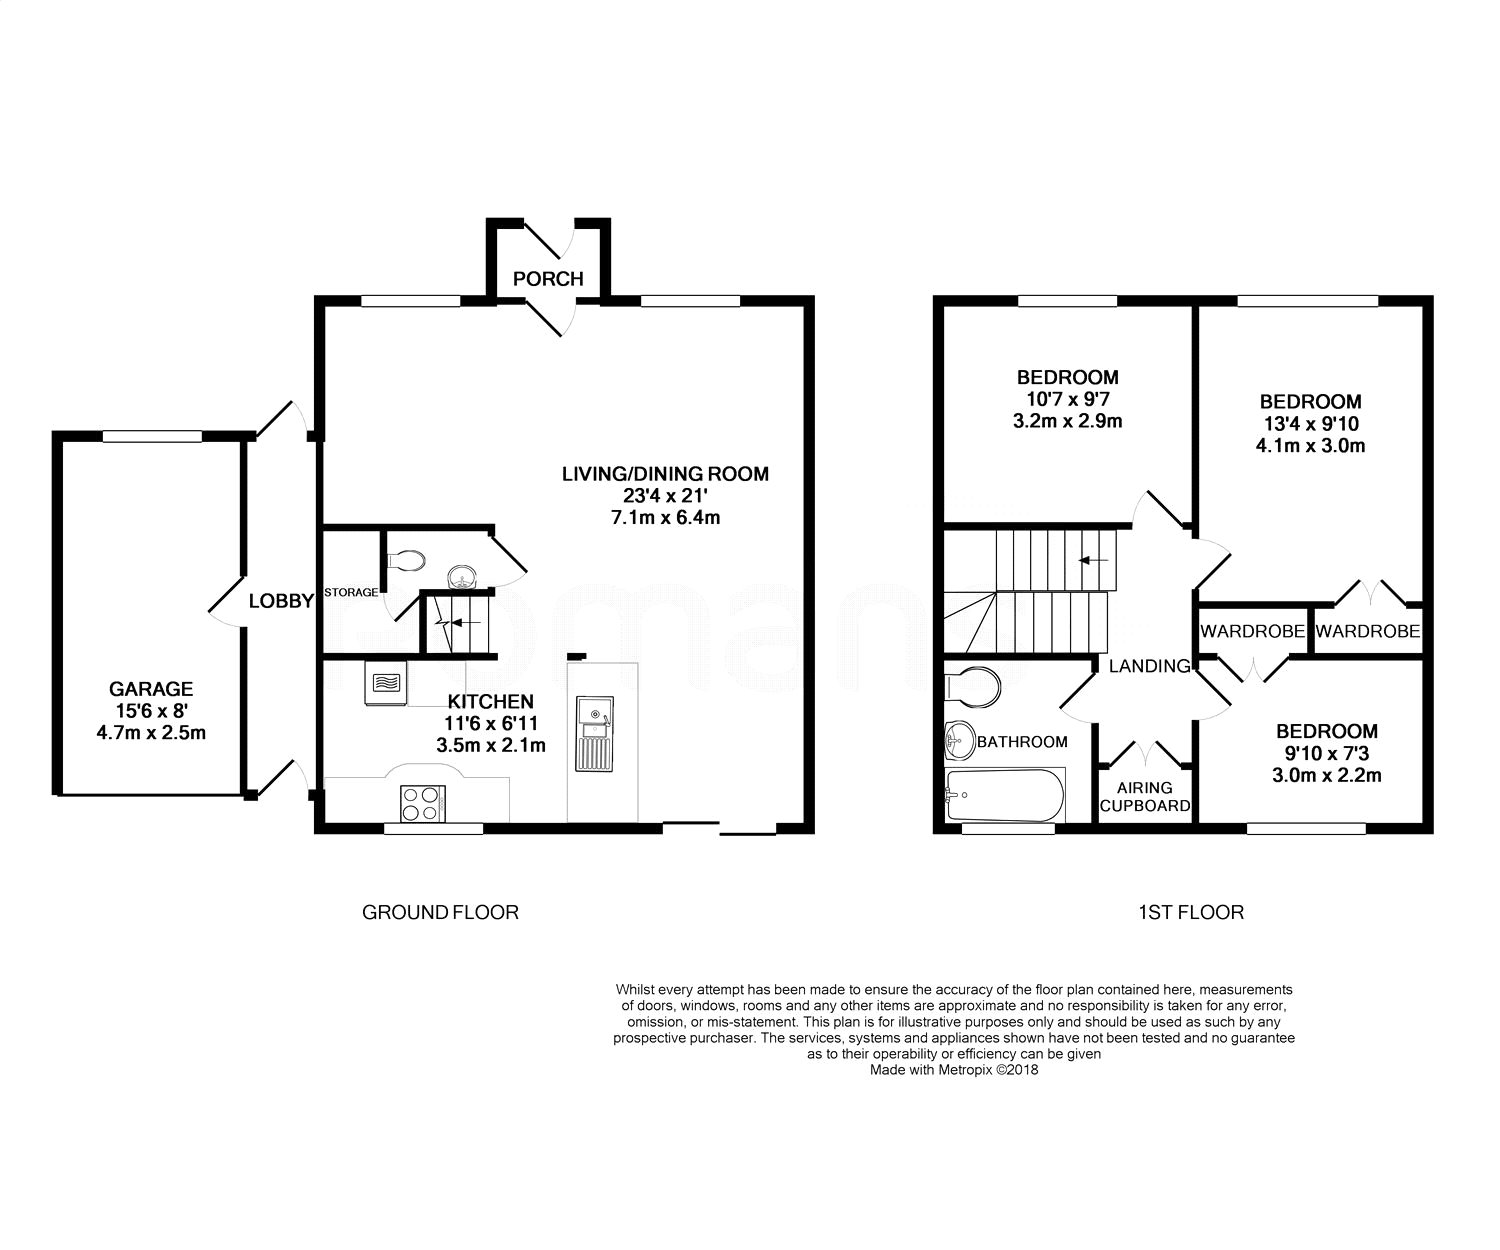 Gatwick Airport Floor Plan Abingdon Drive Caversham Reading Rg4 3 Bedroom Link